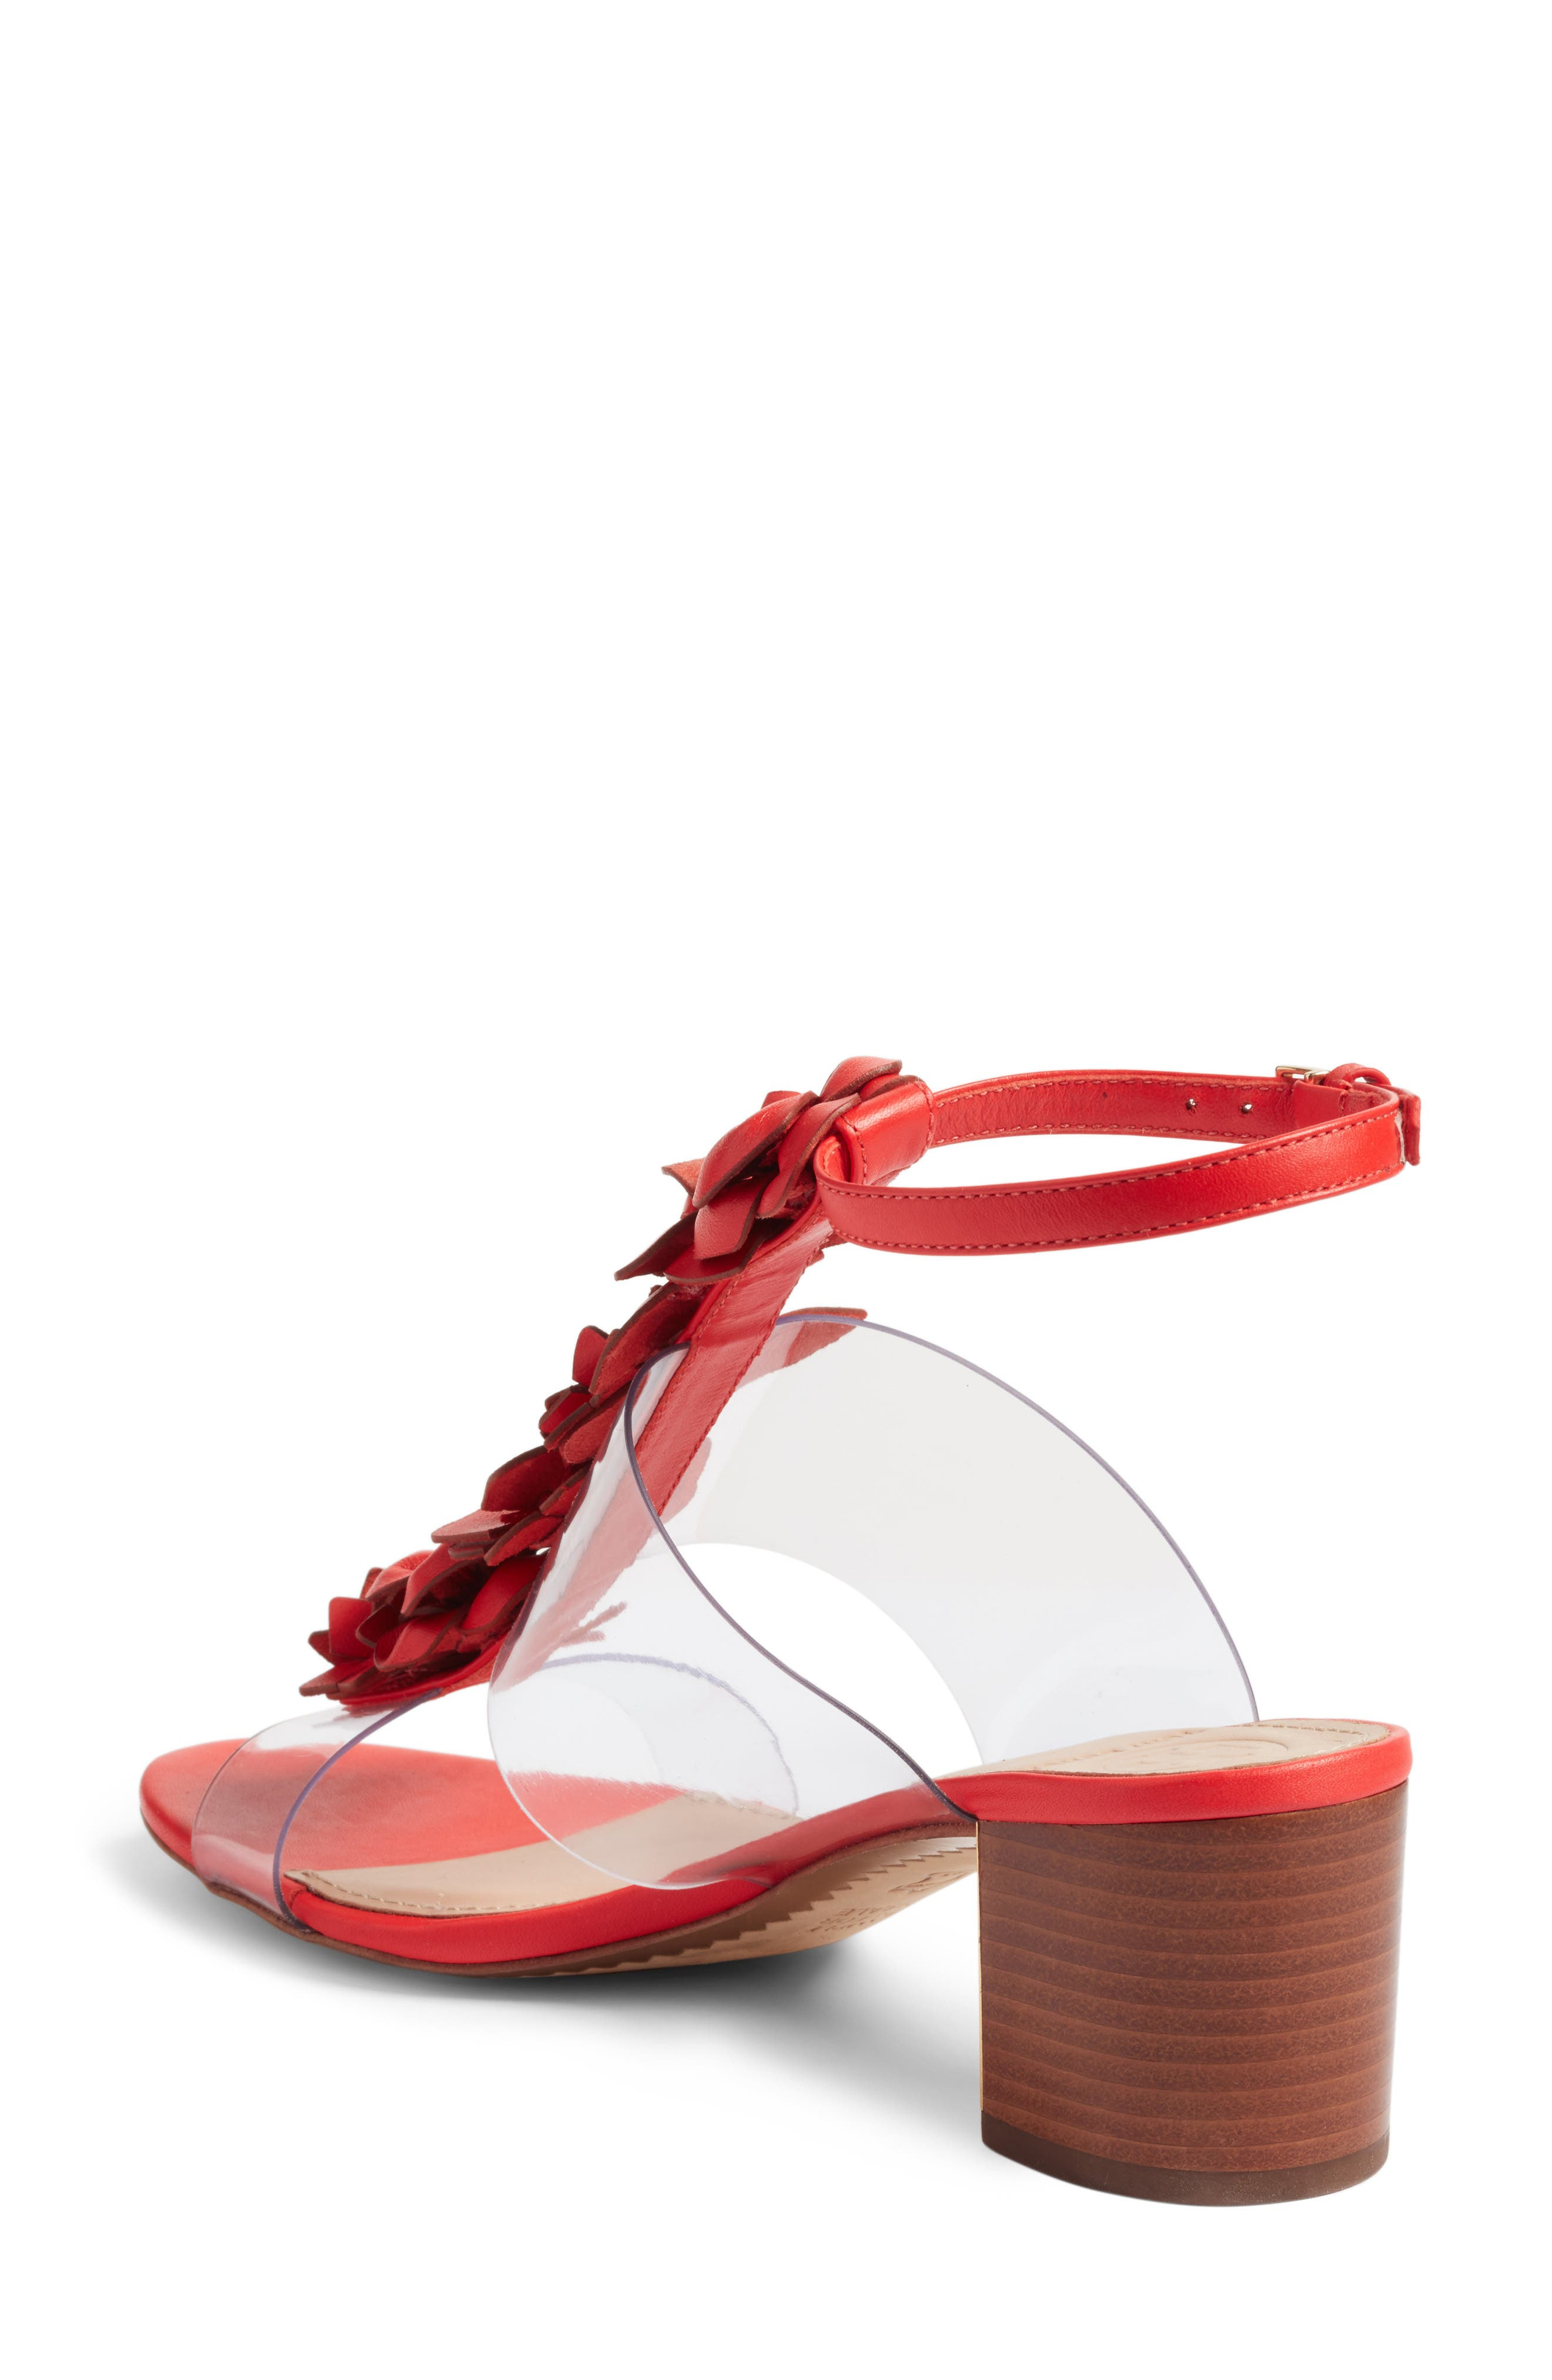 Blossom Sandal,                             Alternate thumbnail 5, color,                             Red Volcano/ Clear